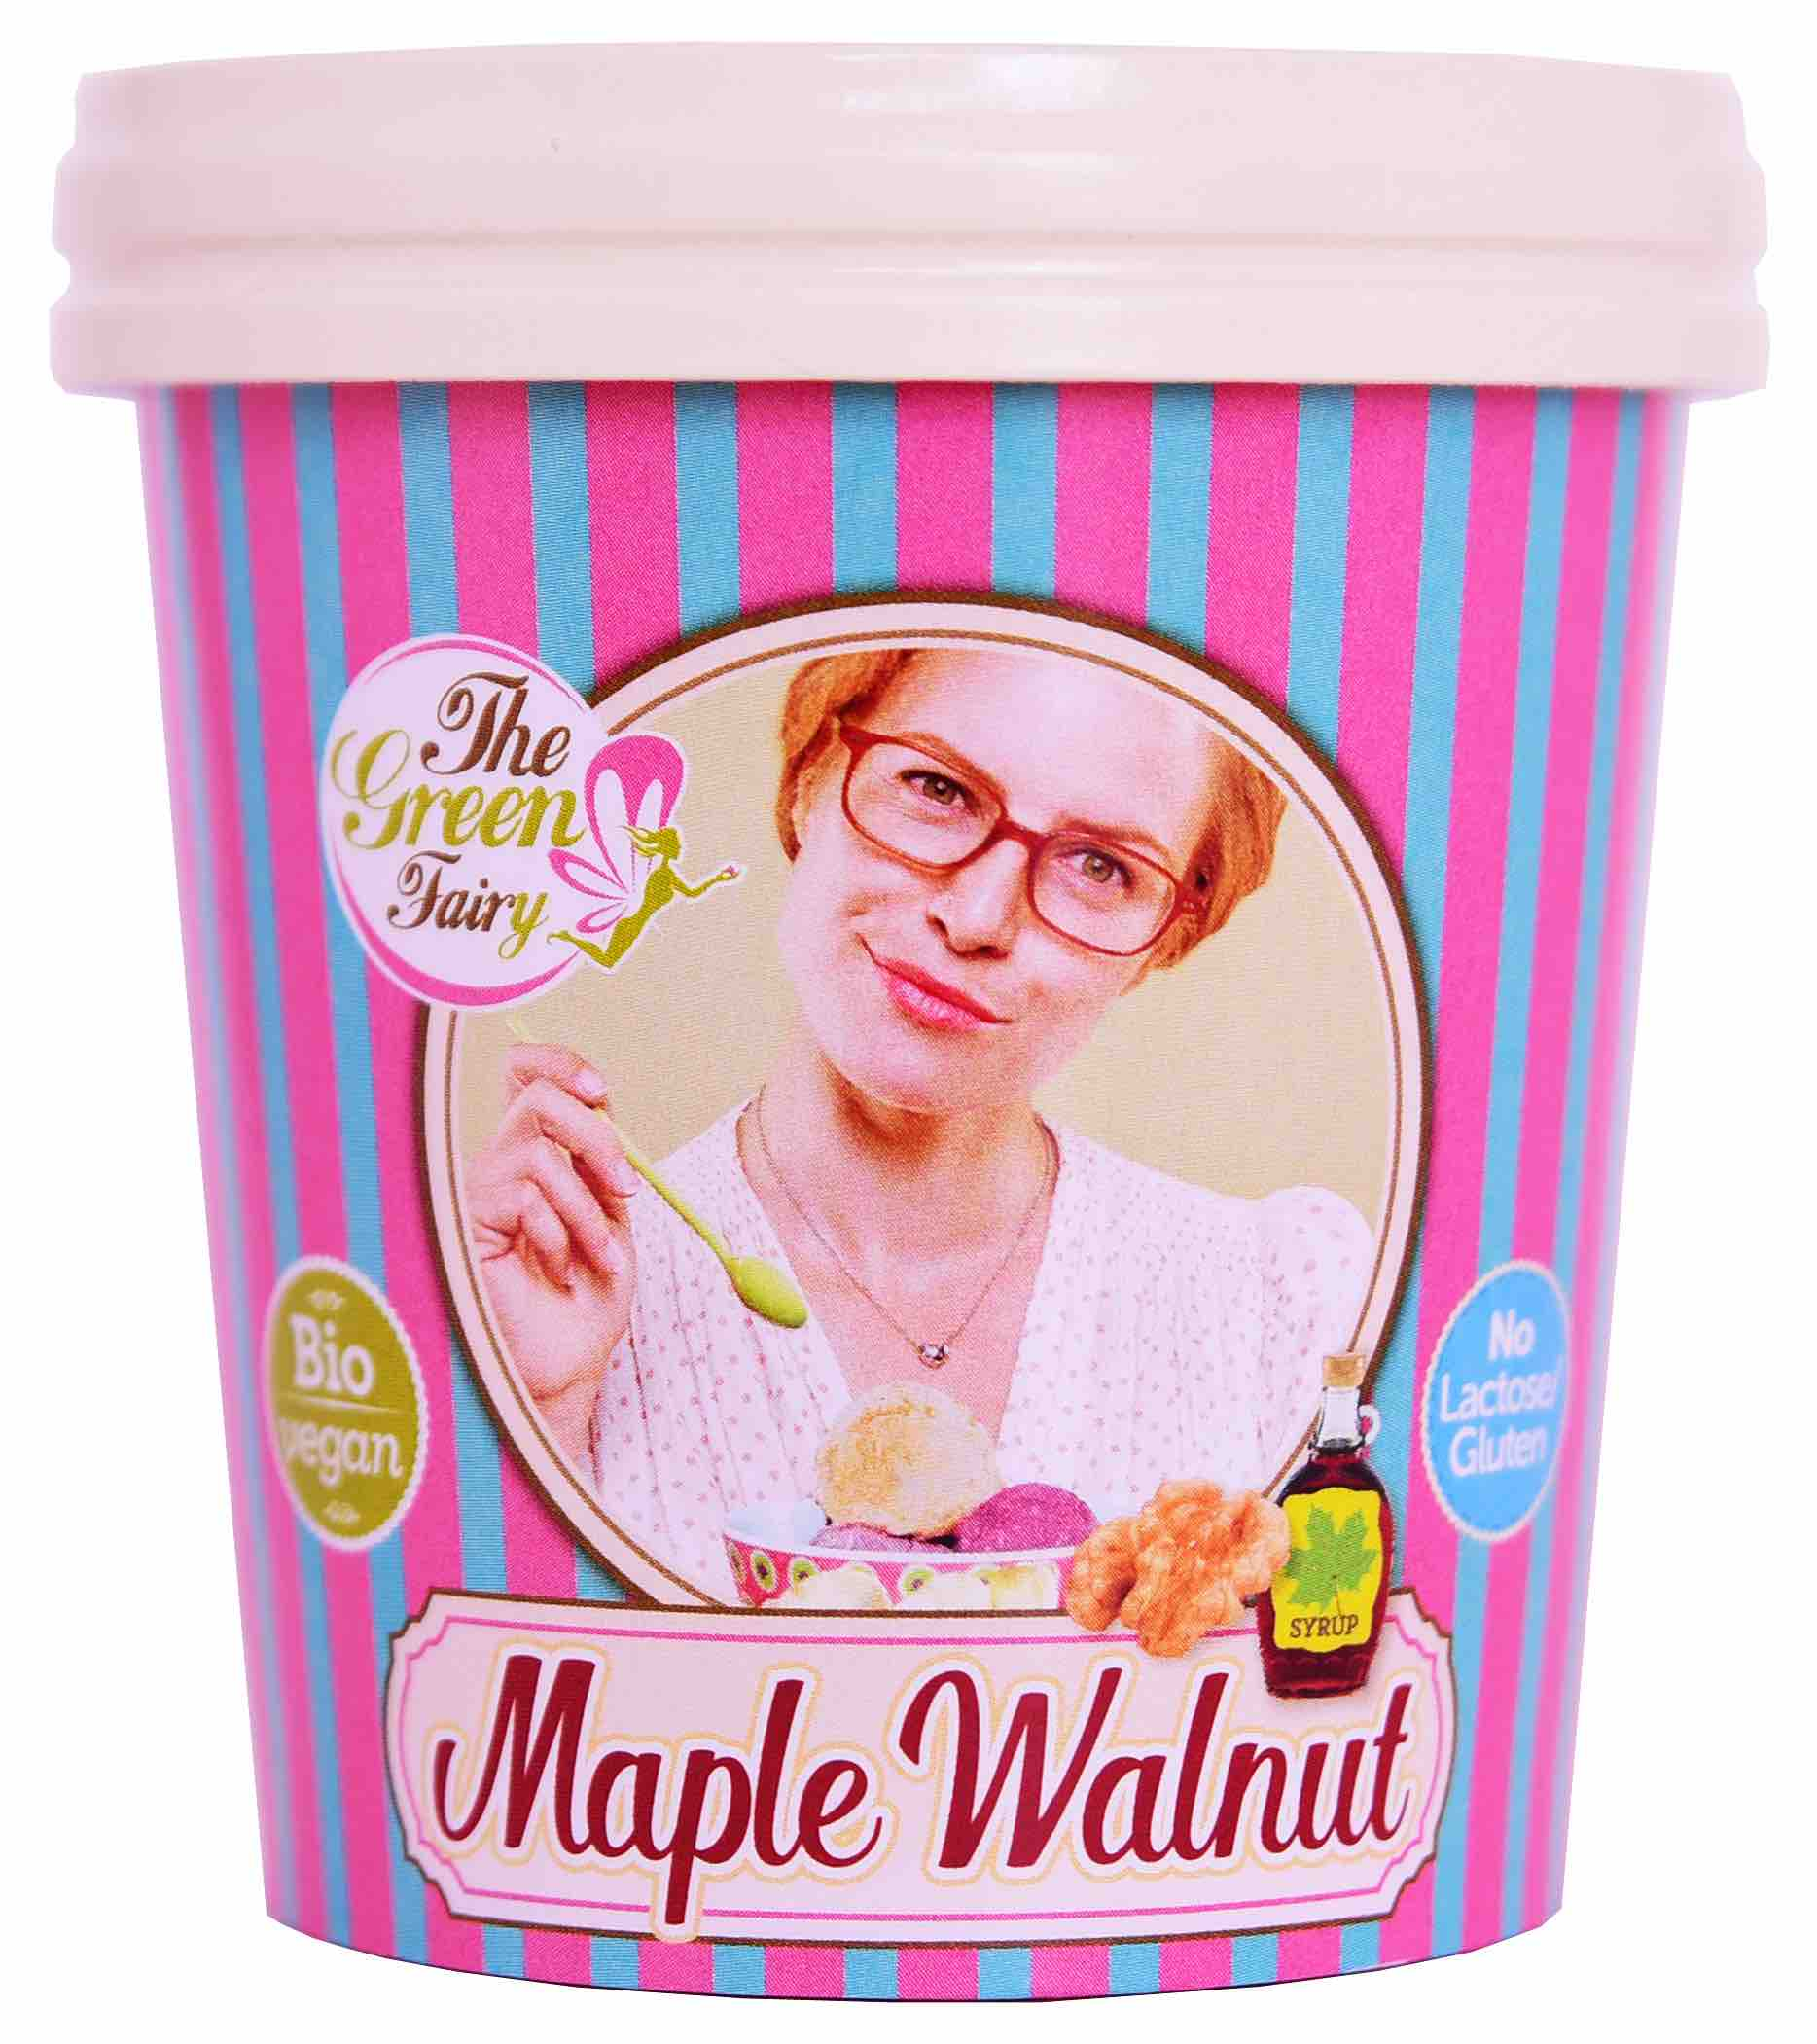 maple walnut the green fairy vegane bio glace switzerland glutenfreie laktosefrei vegan